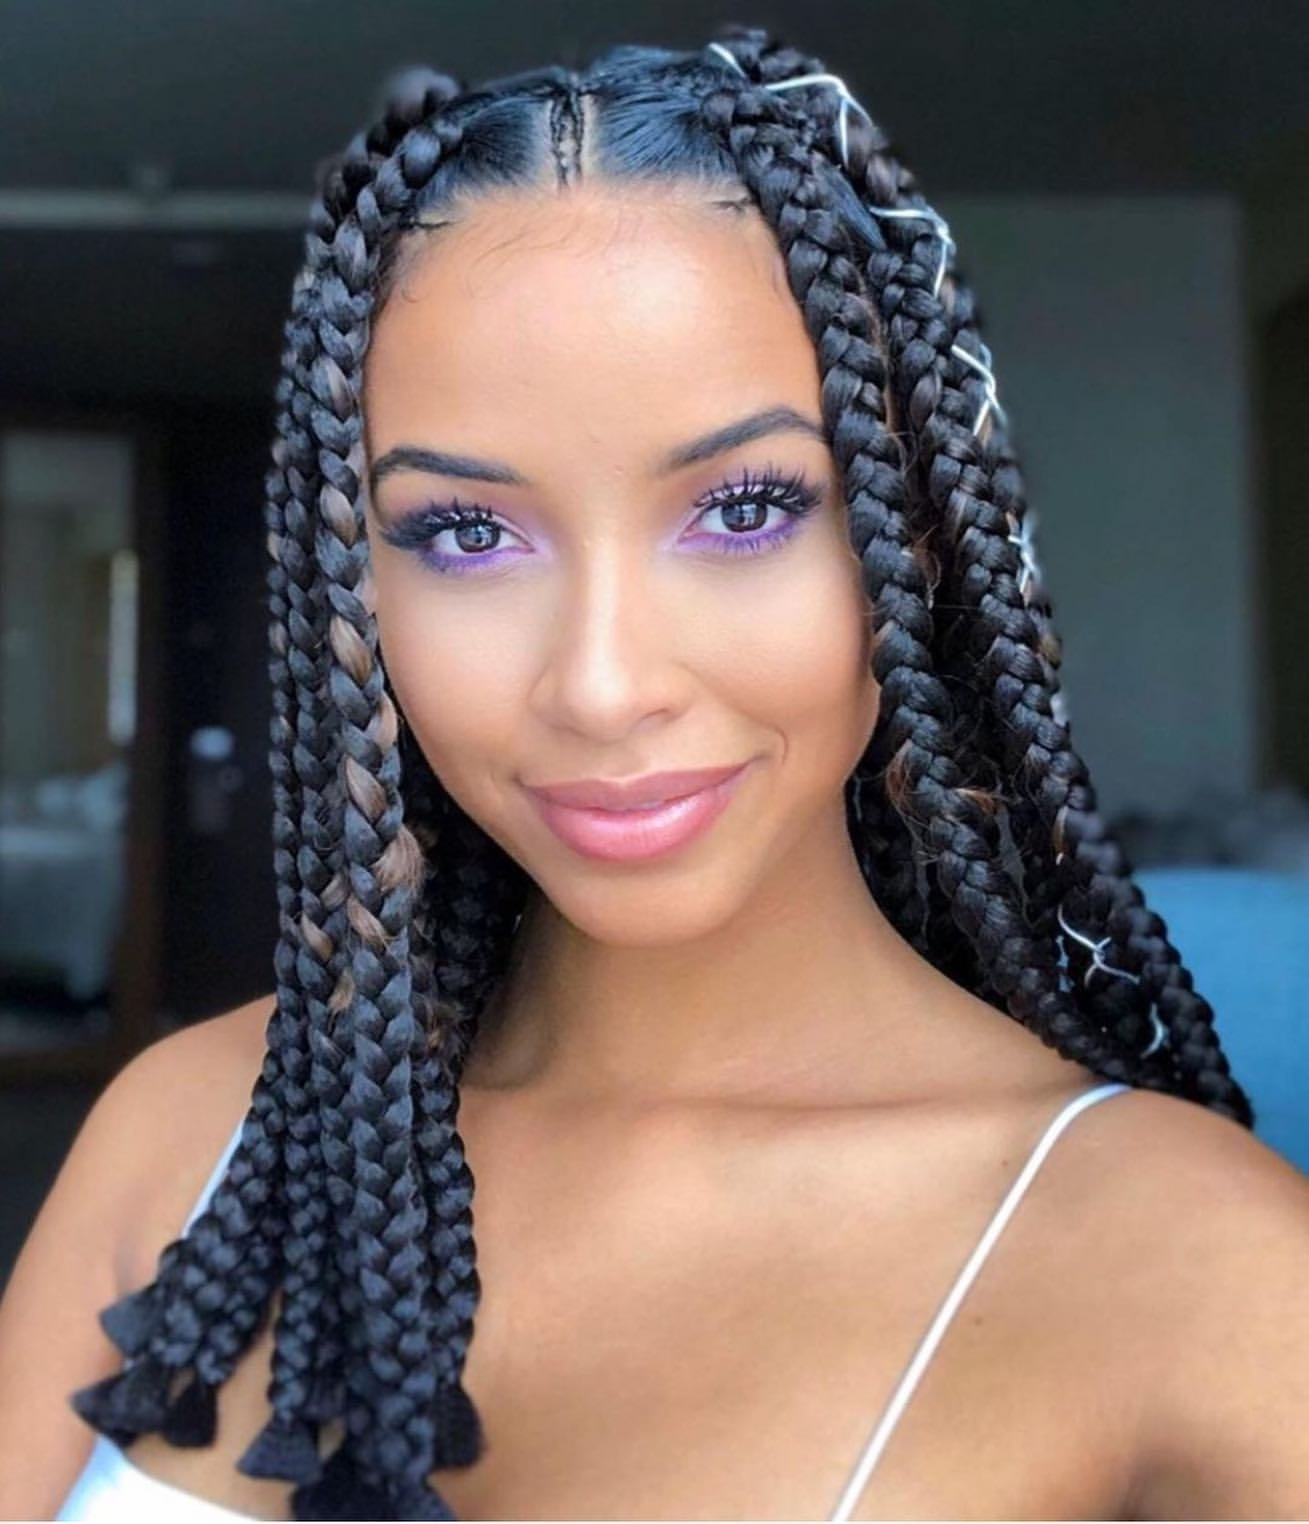 africanhairstylegallery 1606922193